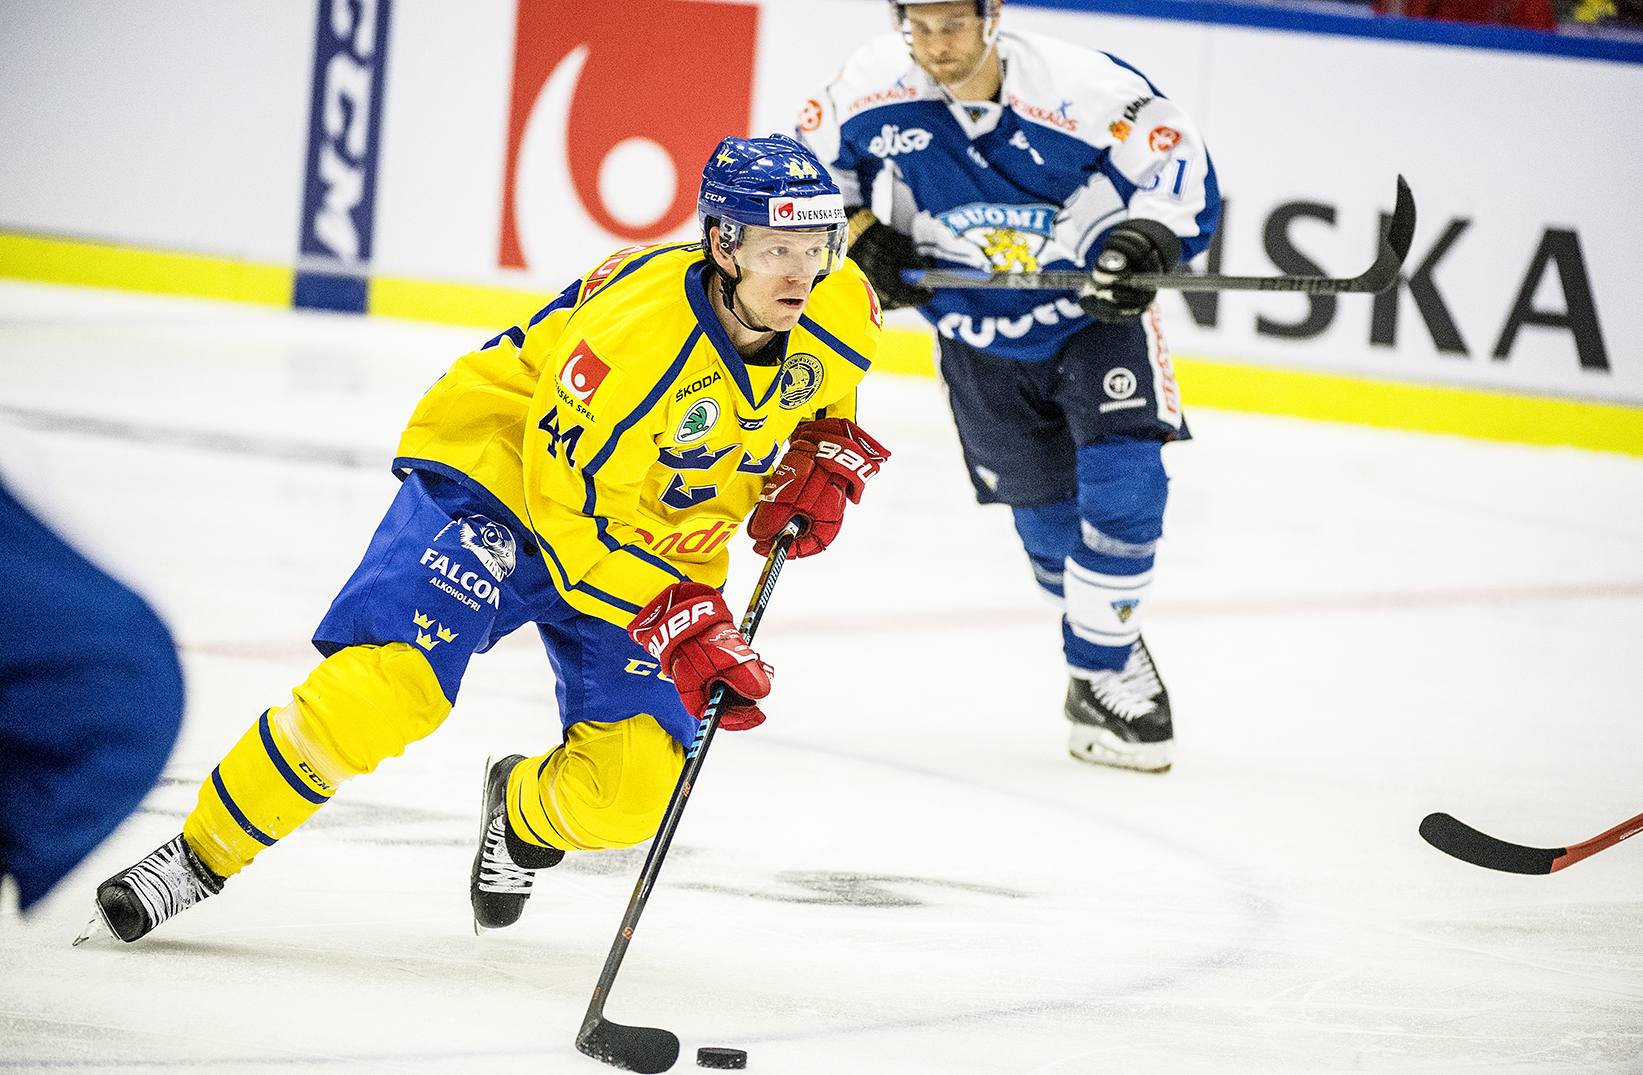 Sverige-Finland, Euro Hockey League